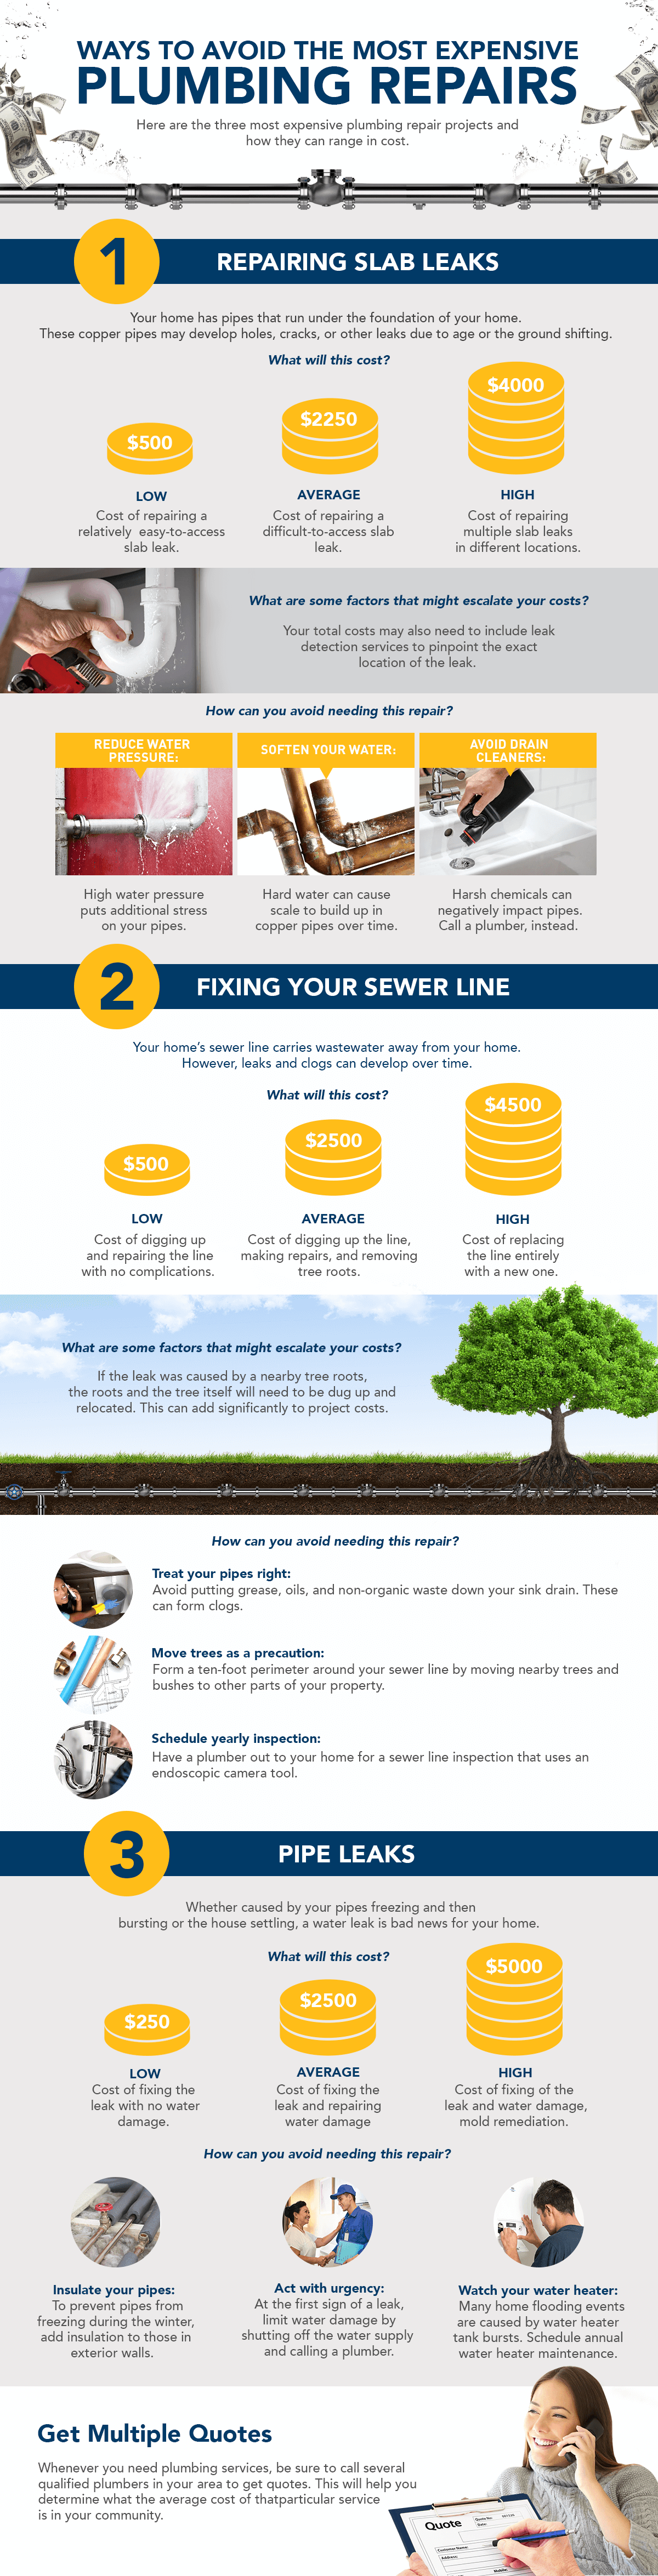 [INFOGRAPHIC] Ways to Avoid the Most Expensive Plumbing Repairs